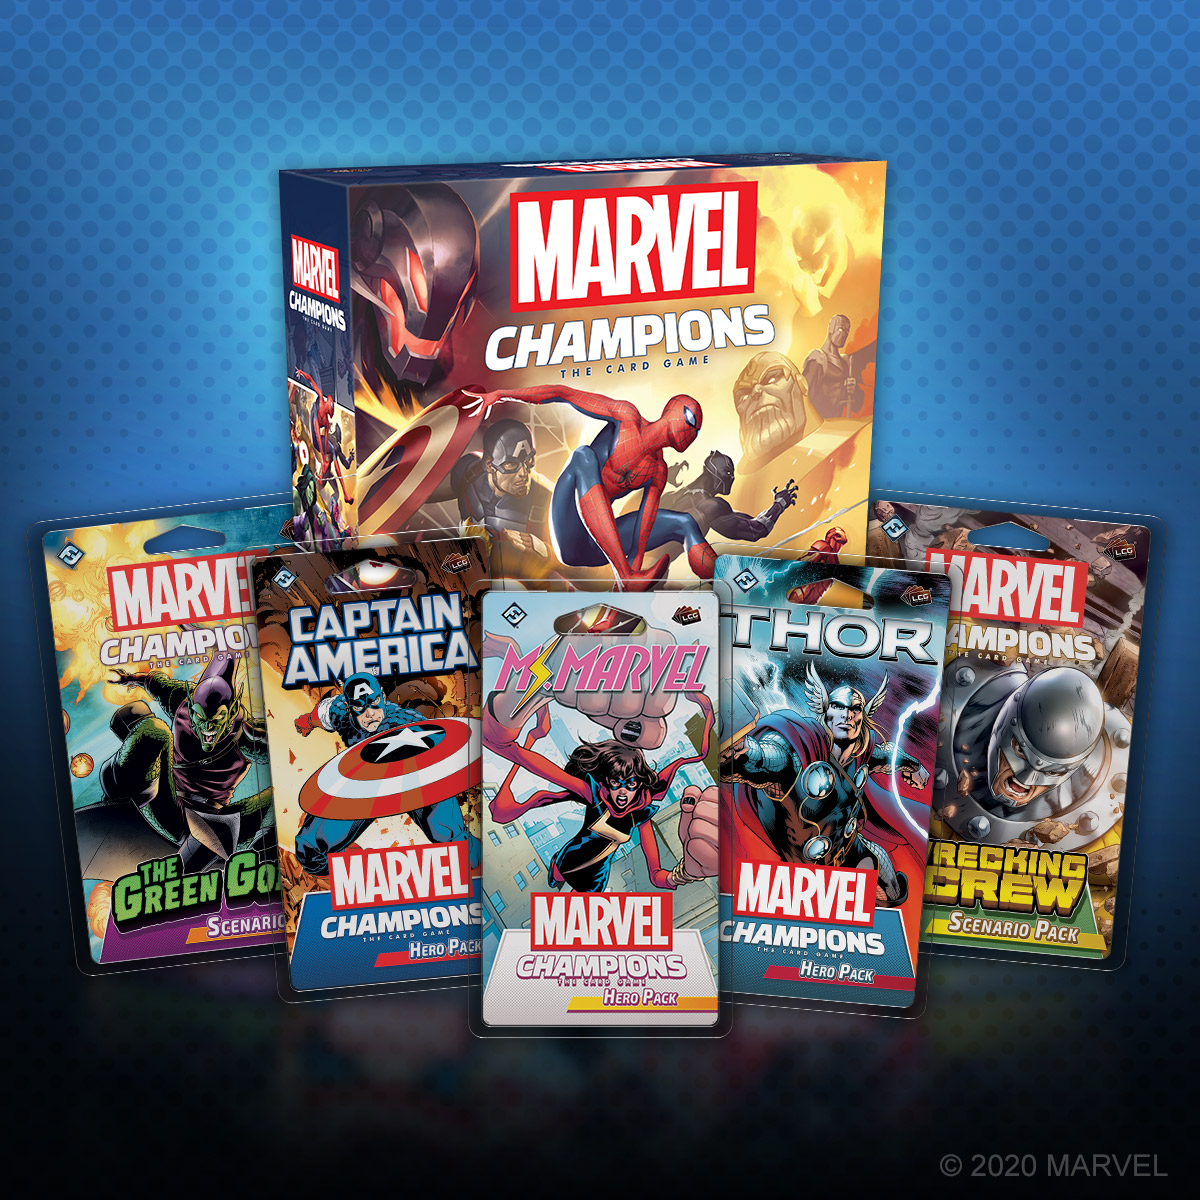 If your collection is incomplete, don't worry—all Marvel Champions: The Card Game expansions are now back in stock at United States retailers! Your local retailer may be offering curbside pickup, otherwise you can find these Hero Packs and Scenario Packs through online channels. https://t.co/yO56CDZj1x